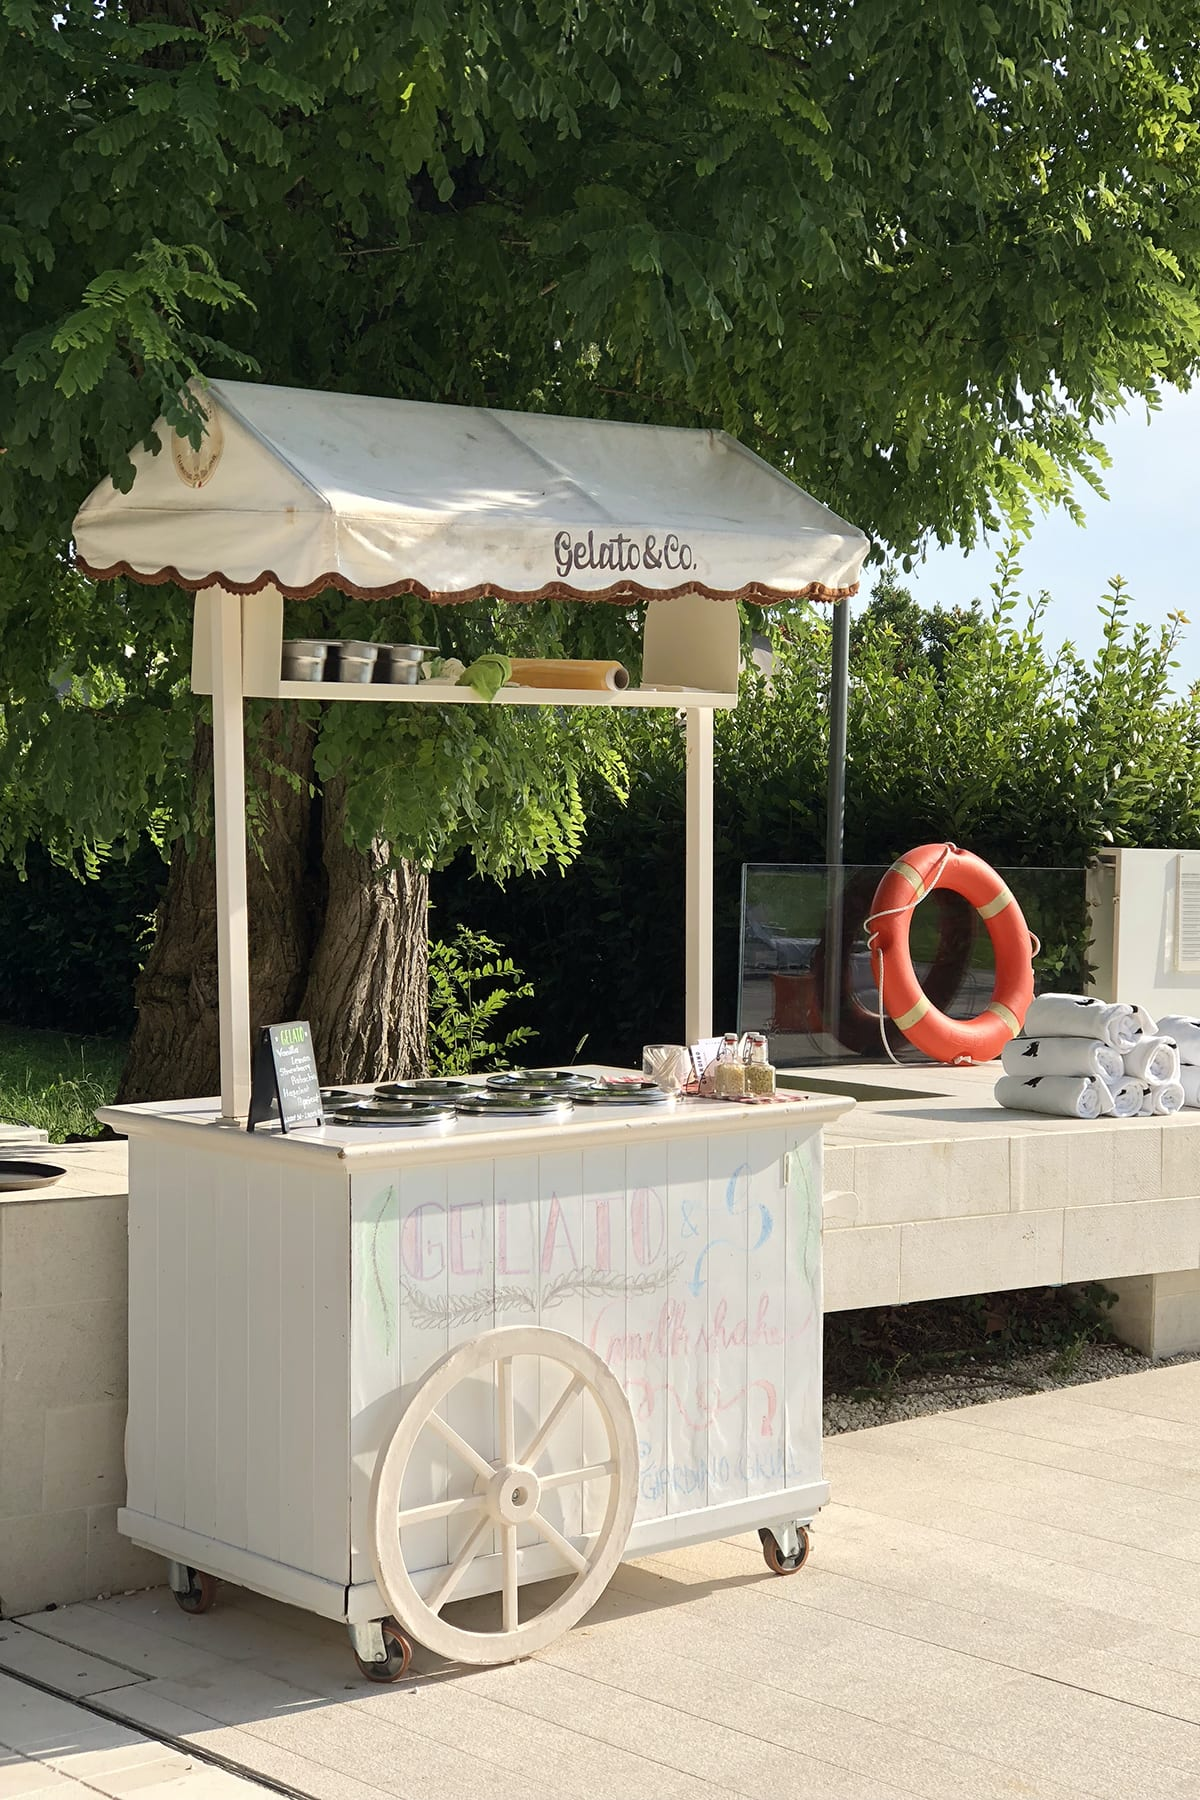 Jw marriott venice italy gelato cart